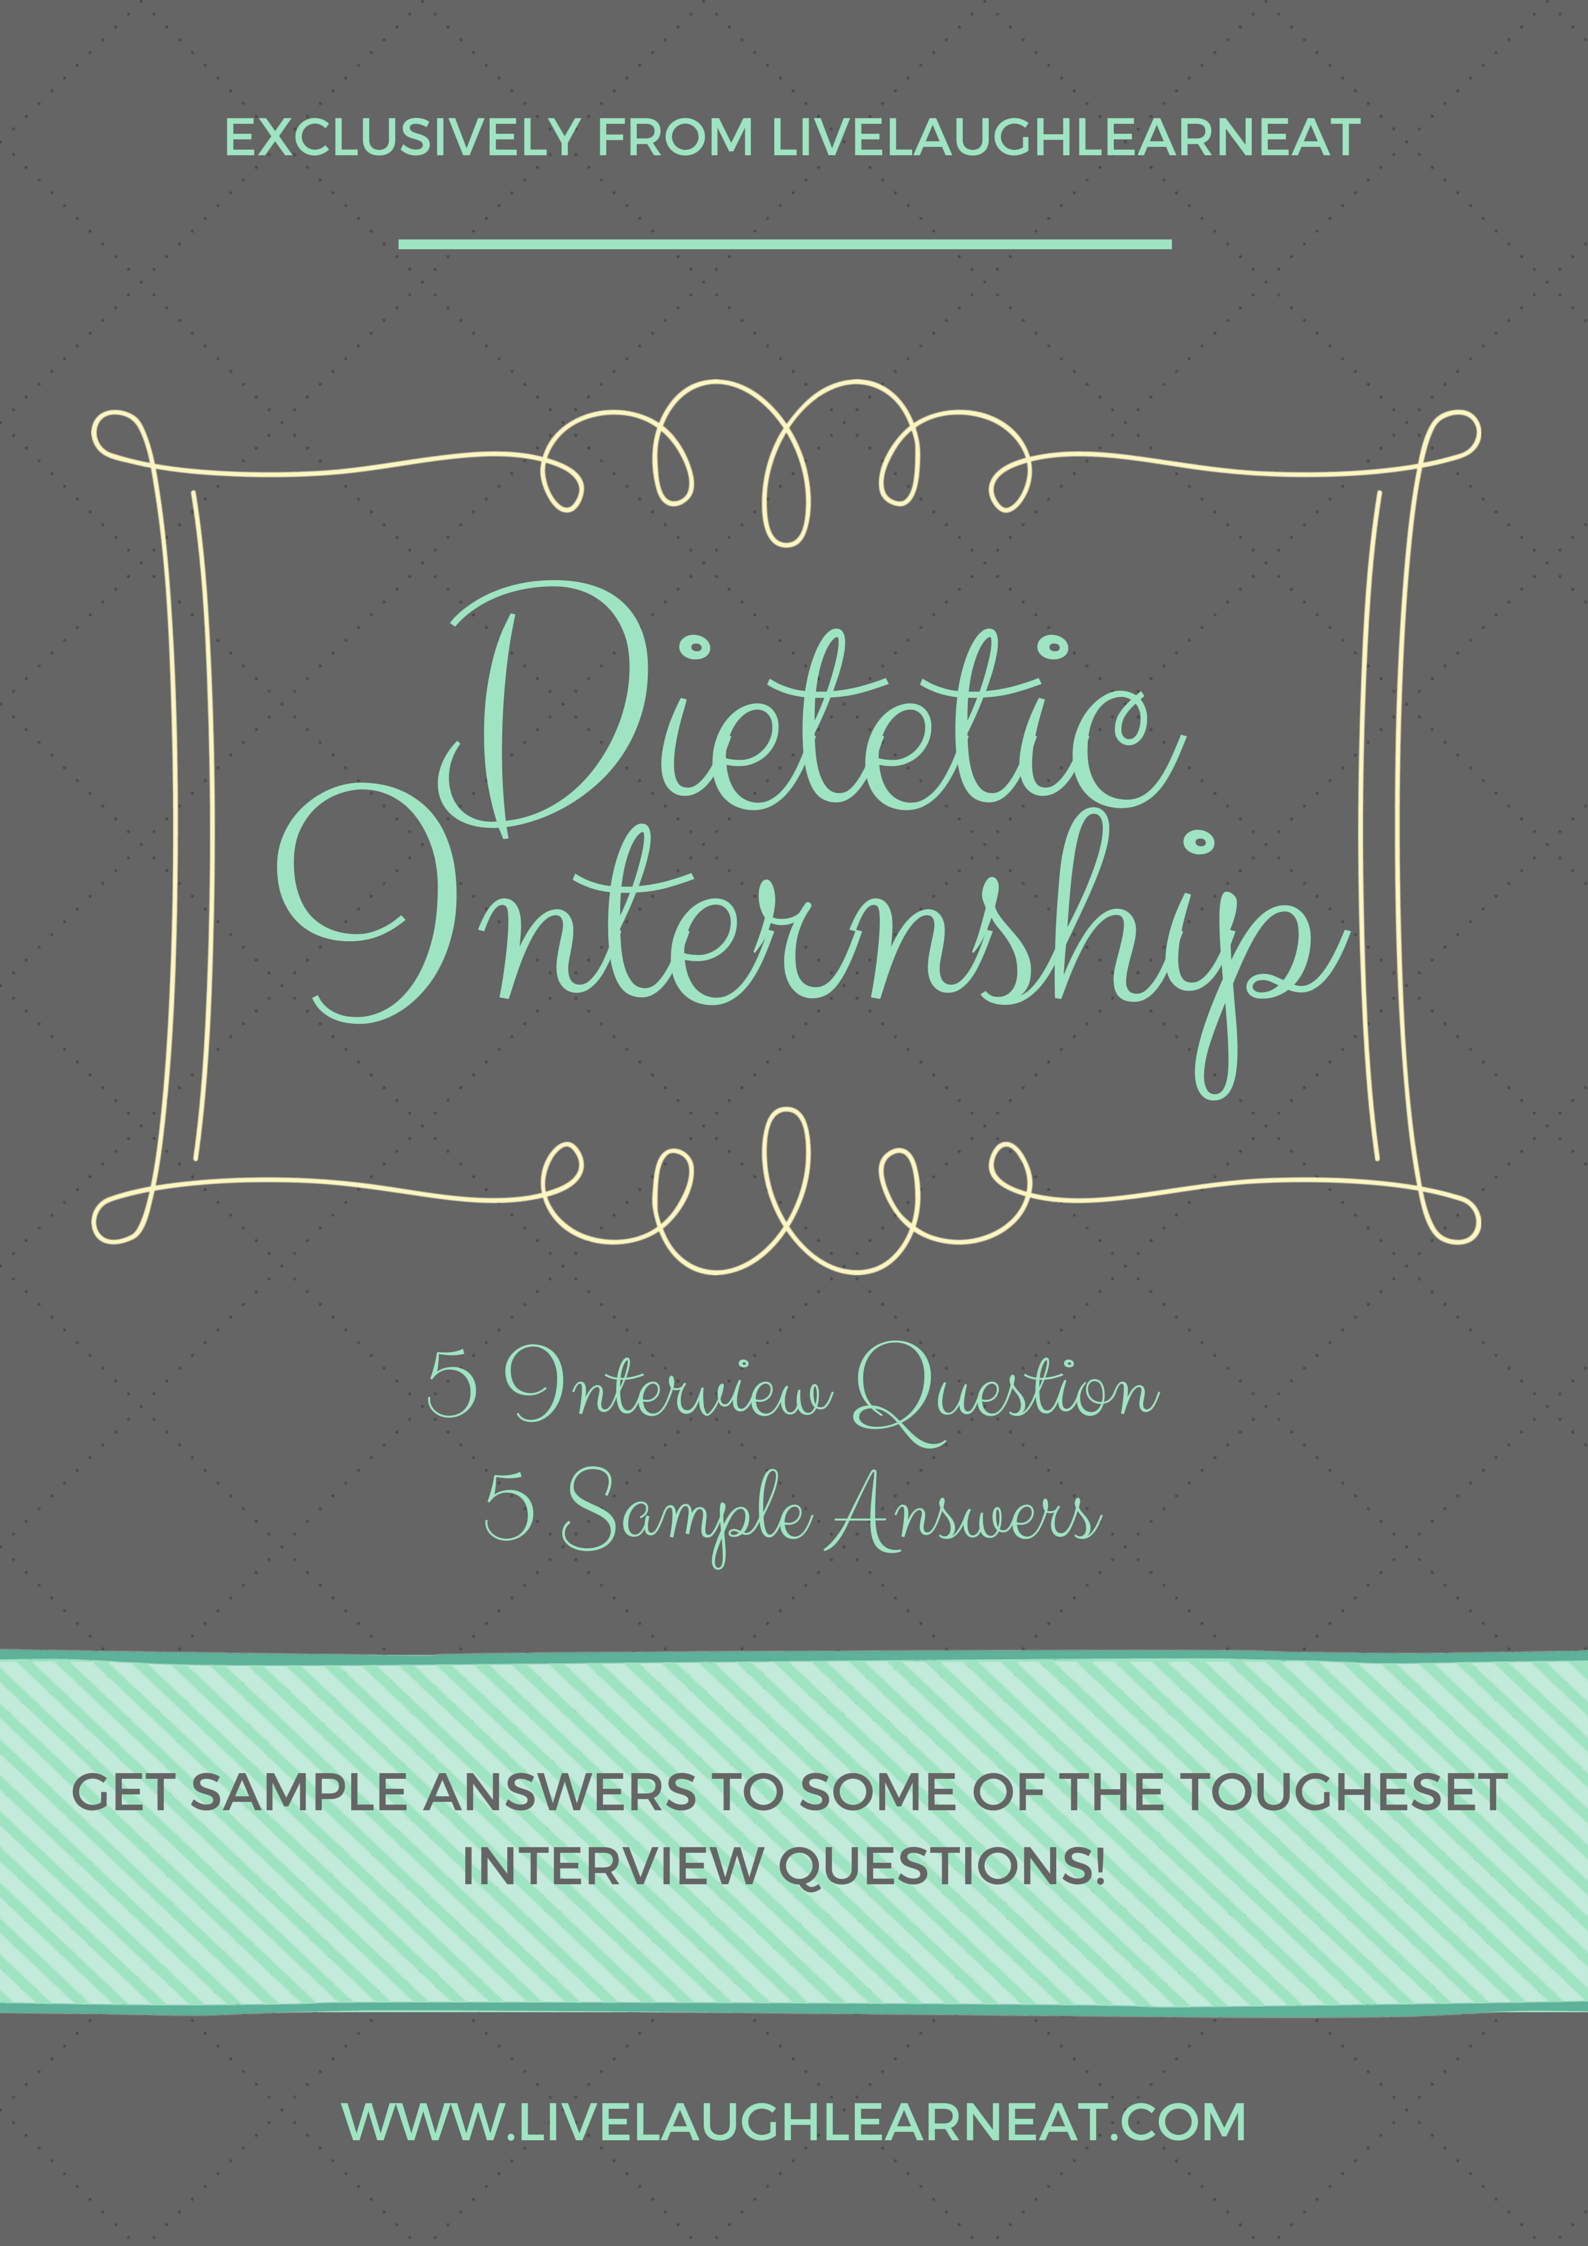 Get 5 Sample Answers to 5 Tough Dietetic Internship Interview Questions!